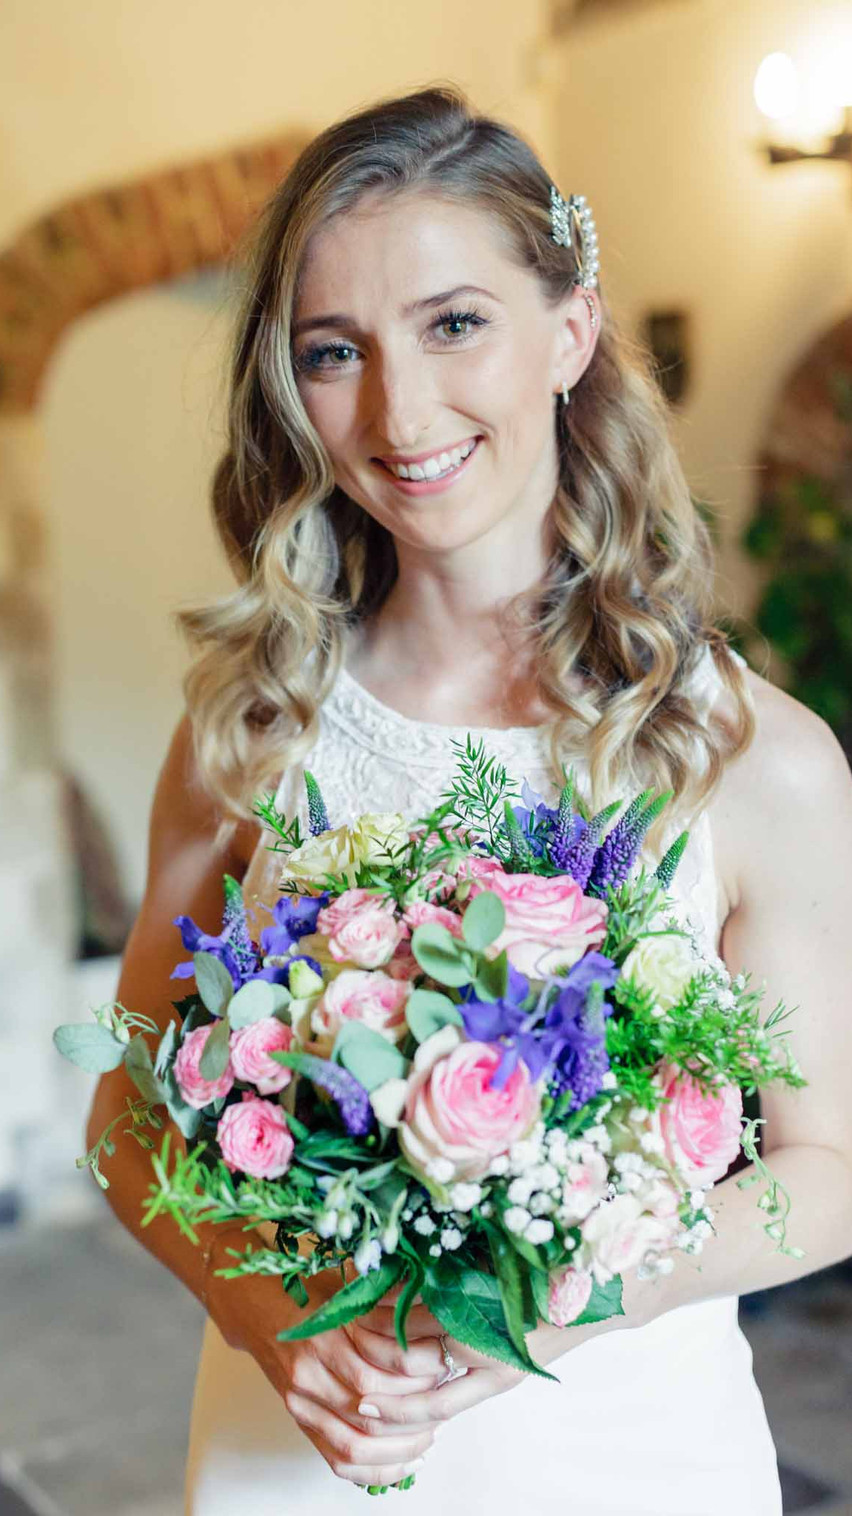 bride in a white dress holds her bouquet looking at the camera